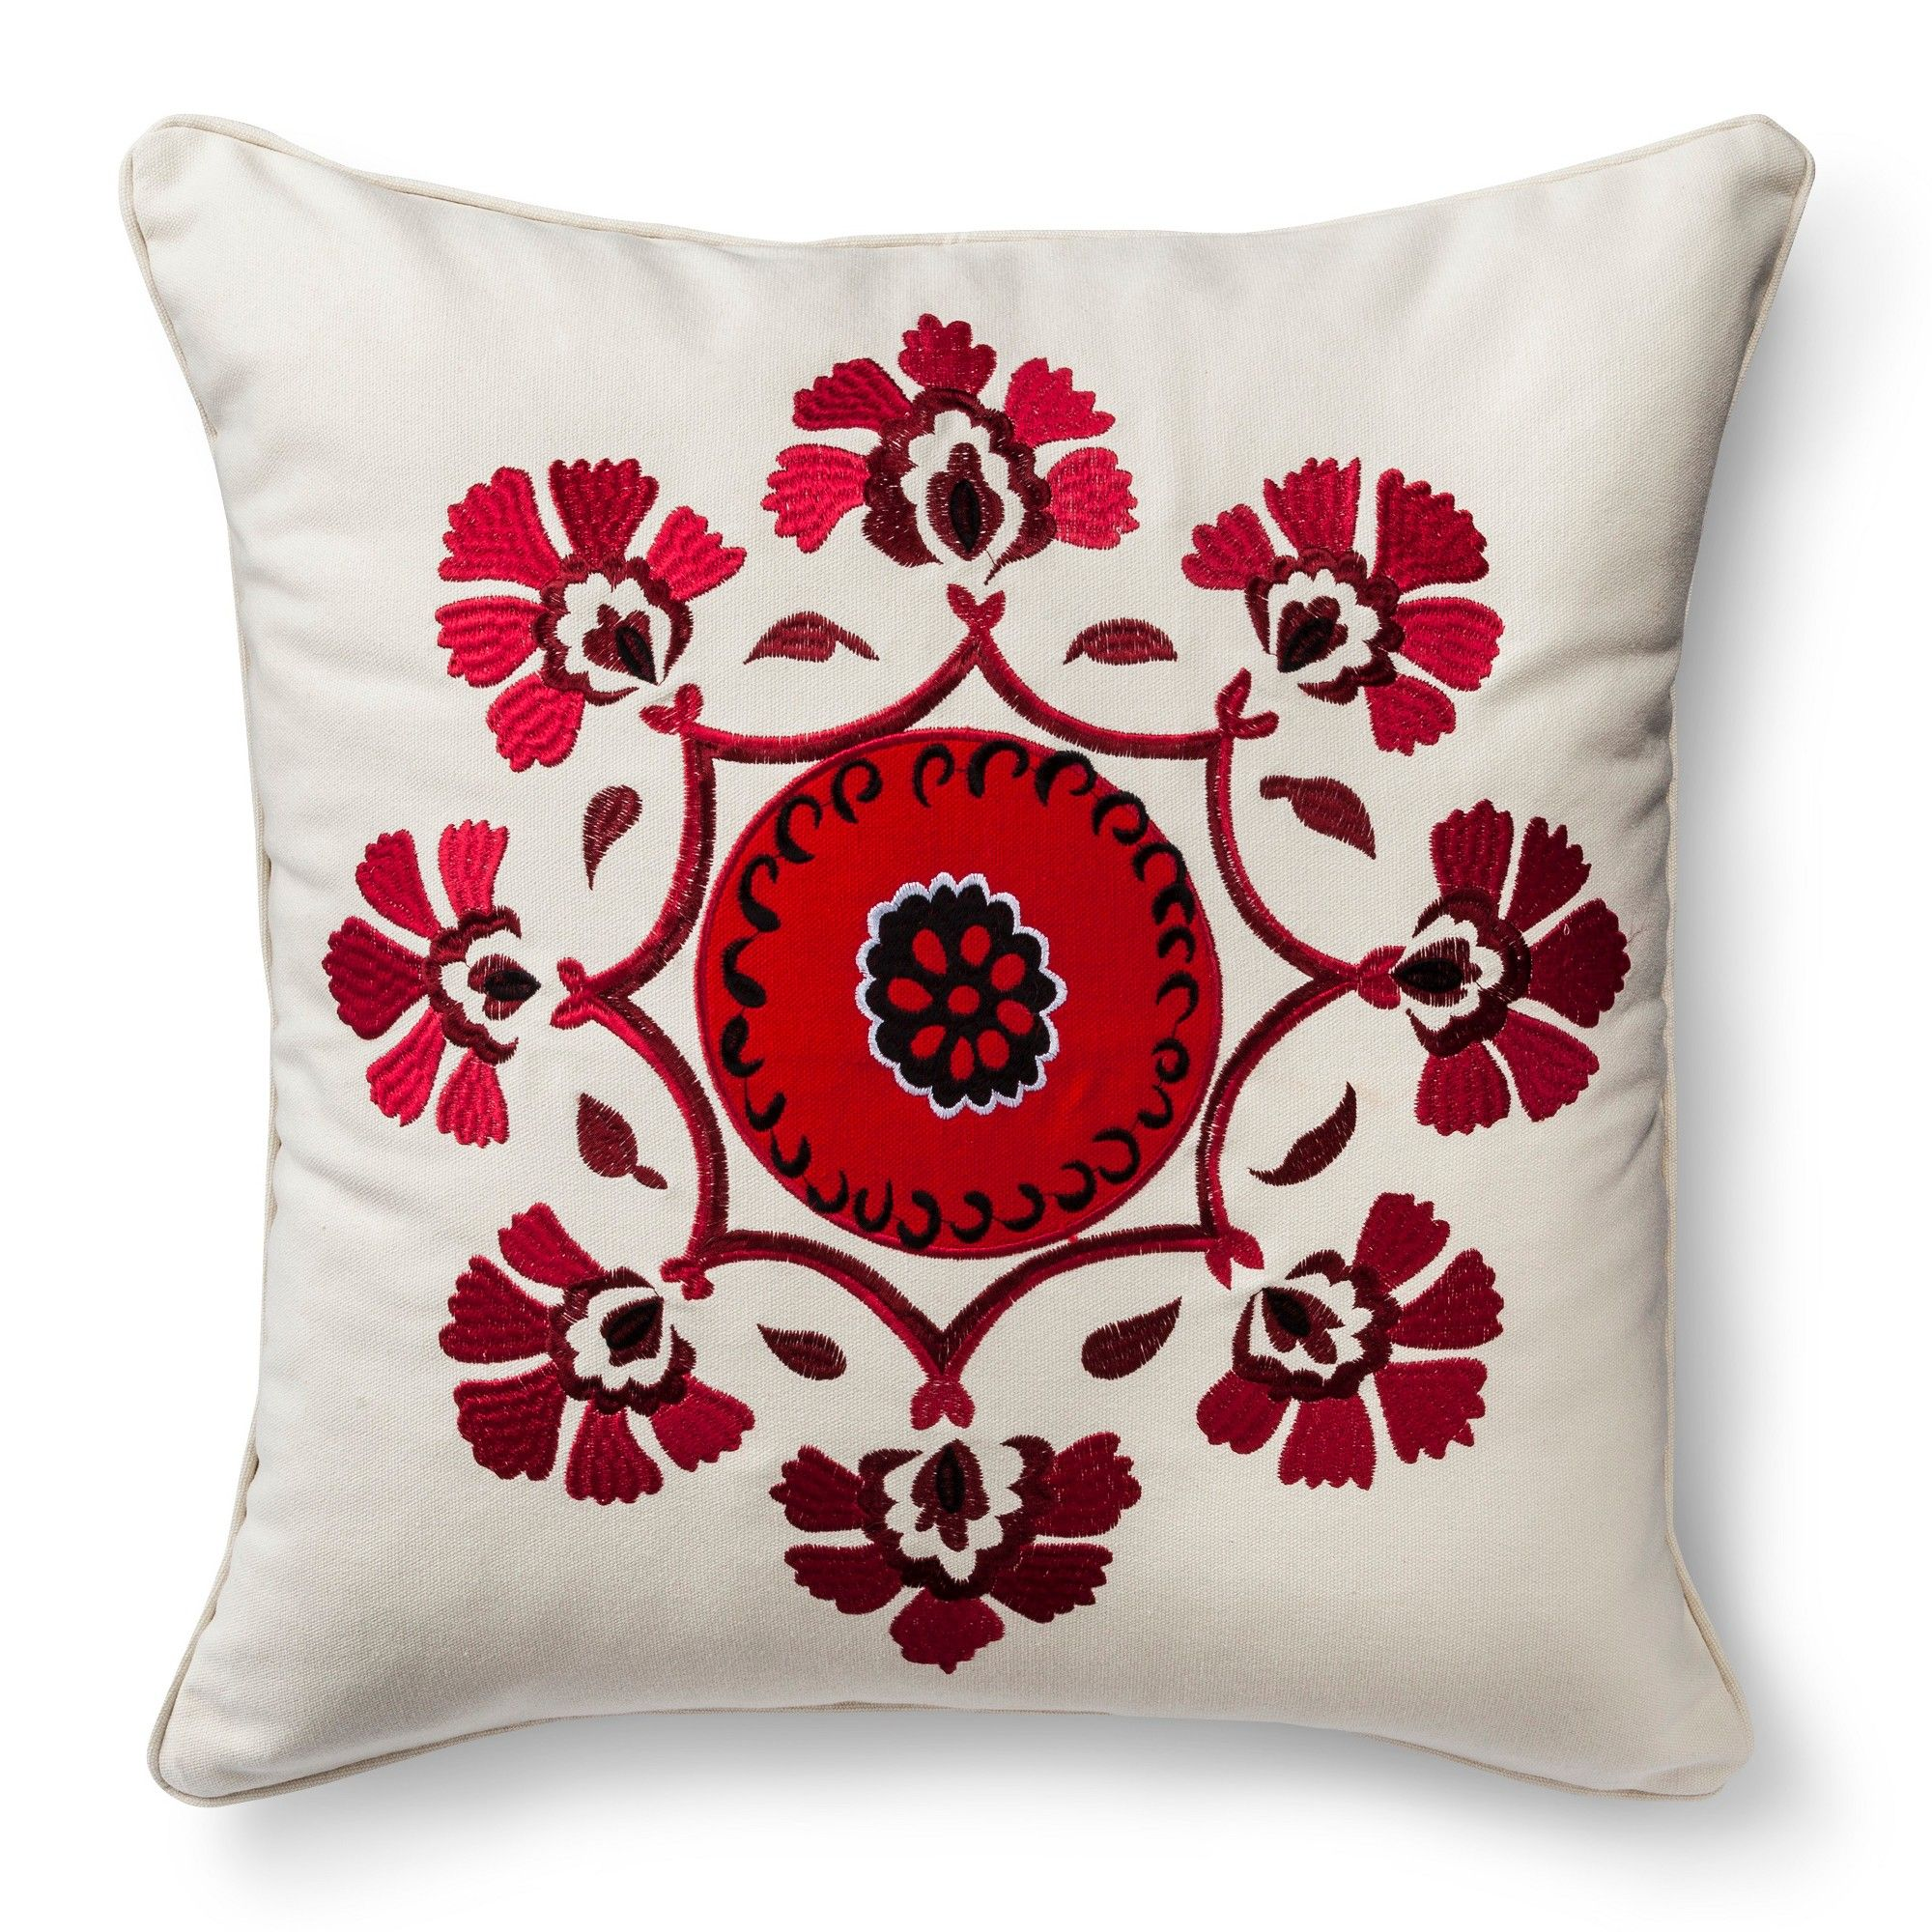 shopping clothing rectangular perfect com bedding online throw pillow furniture more red jewelry overstock pillowspillows pin oxford electronics pillows